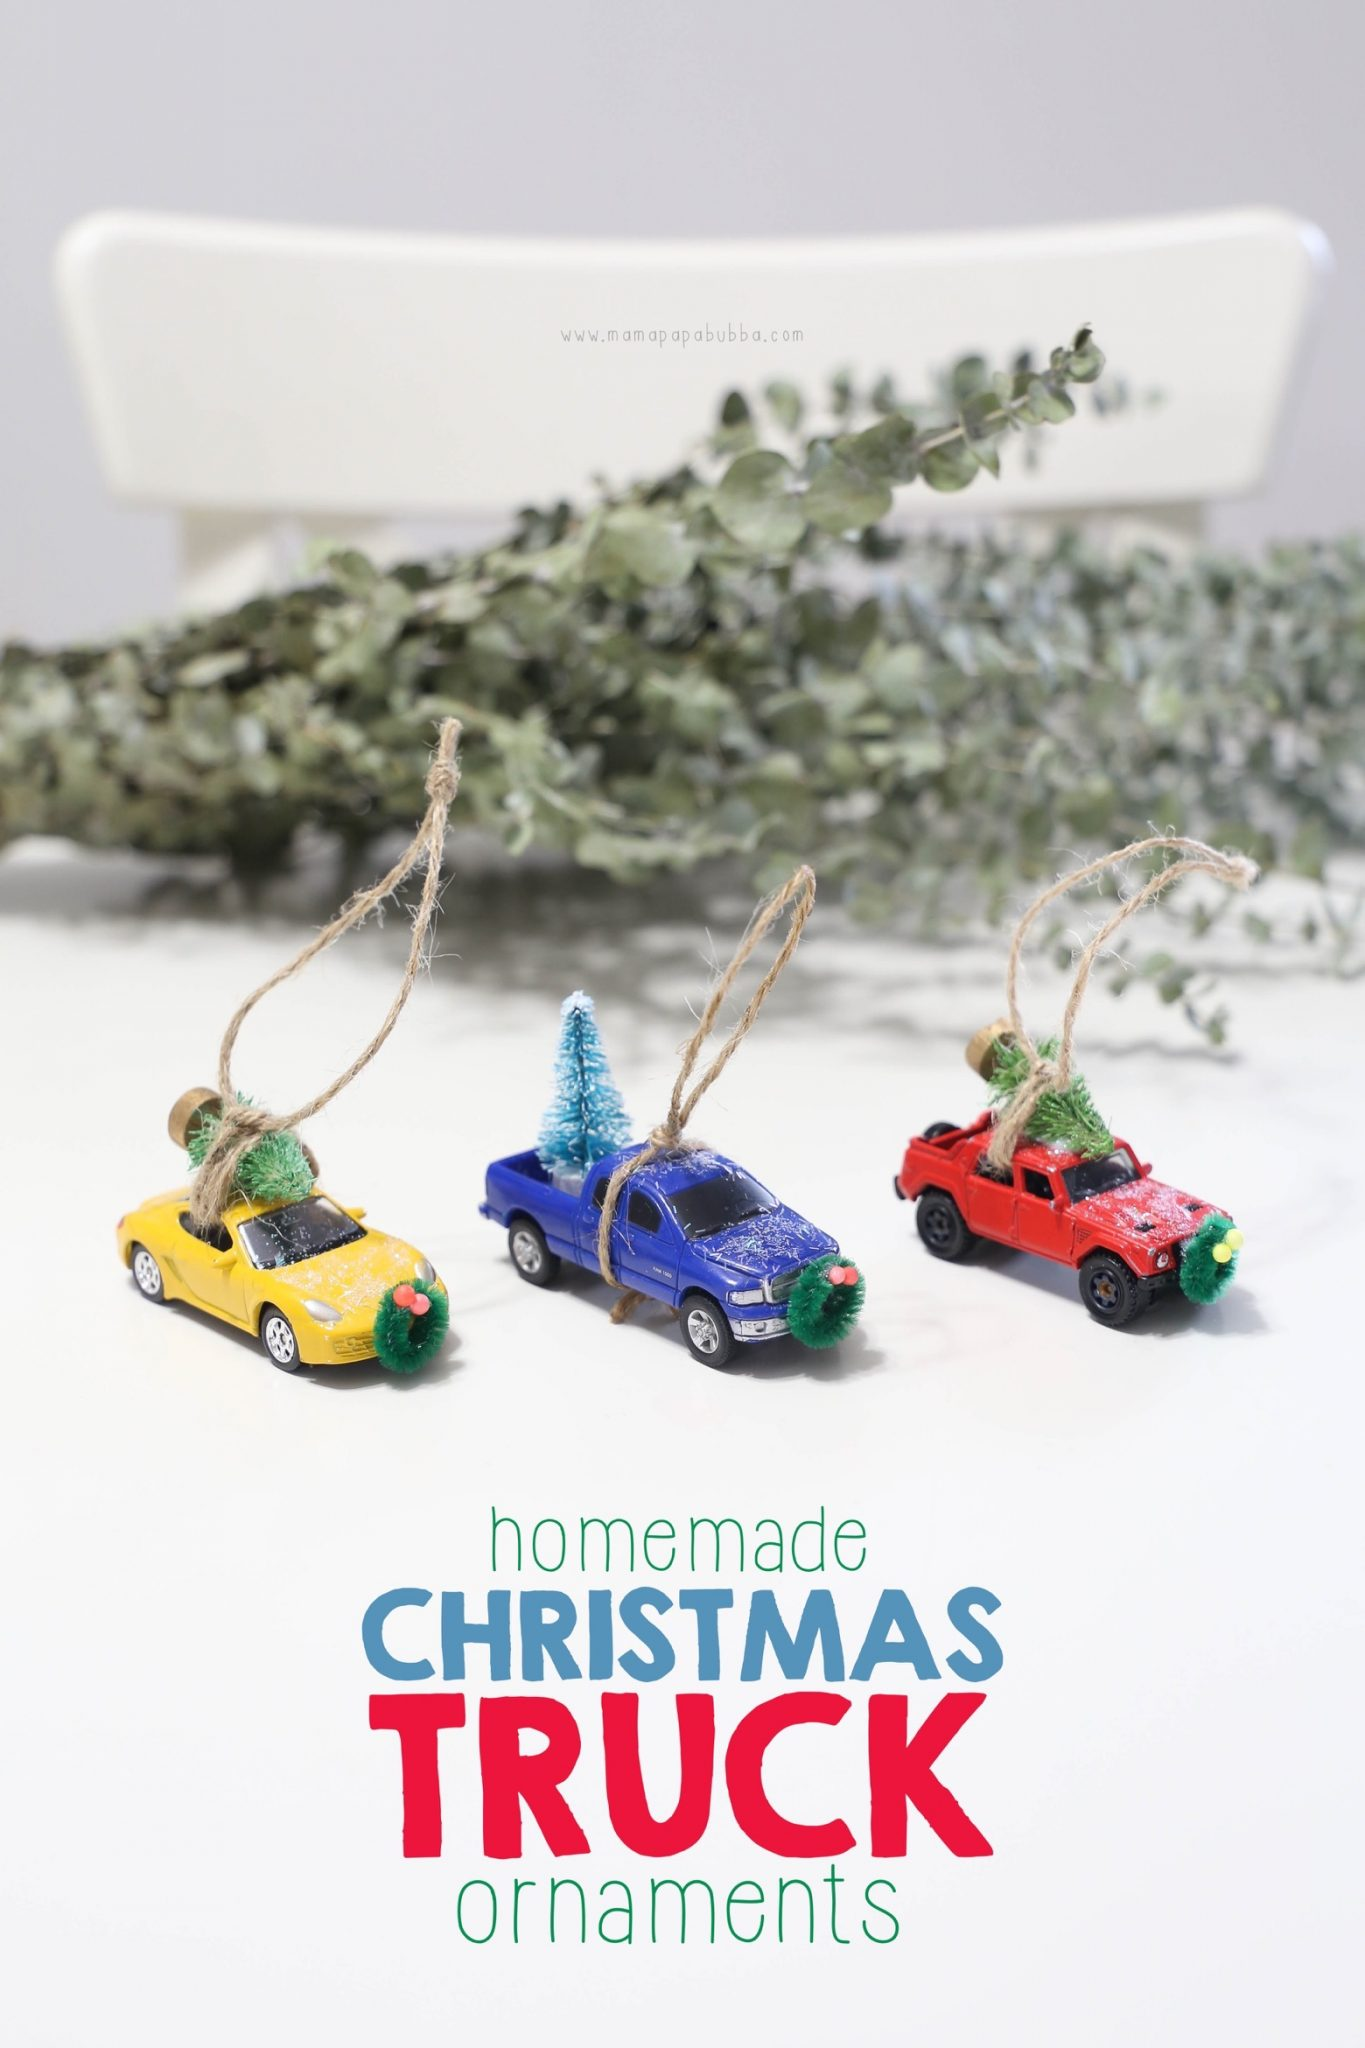 Homemade Christmas Truck Ornaments | Mama Papa Bubba